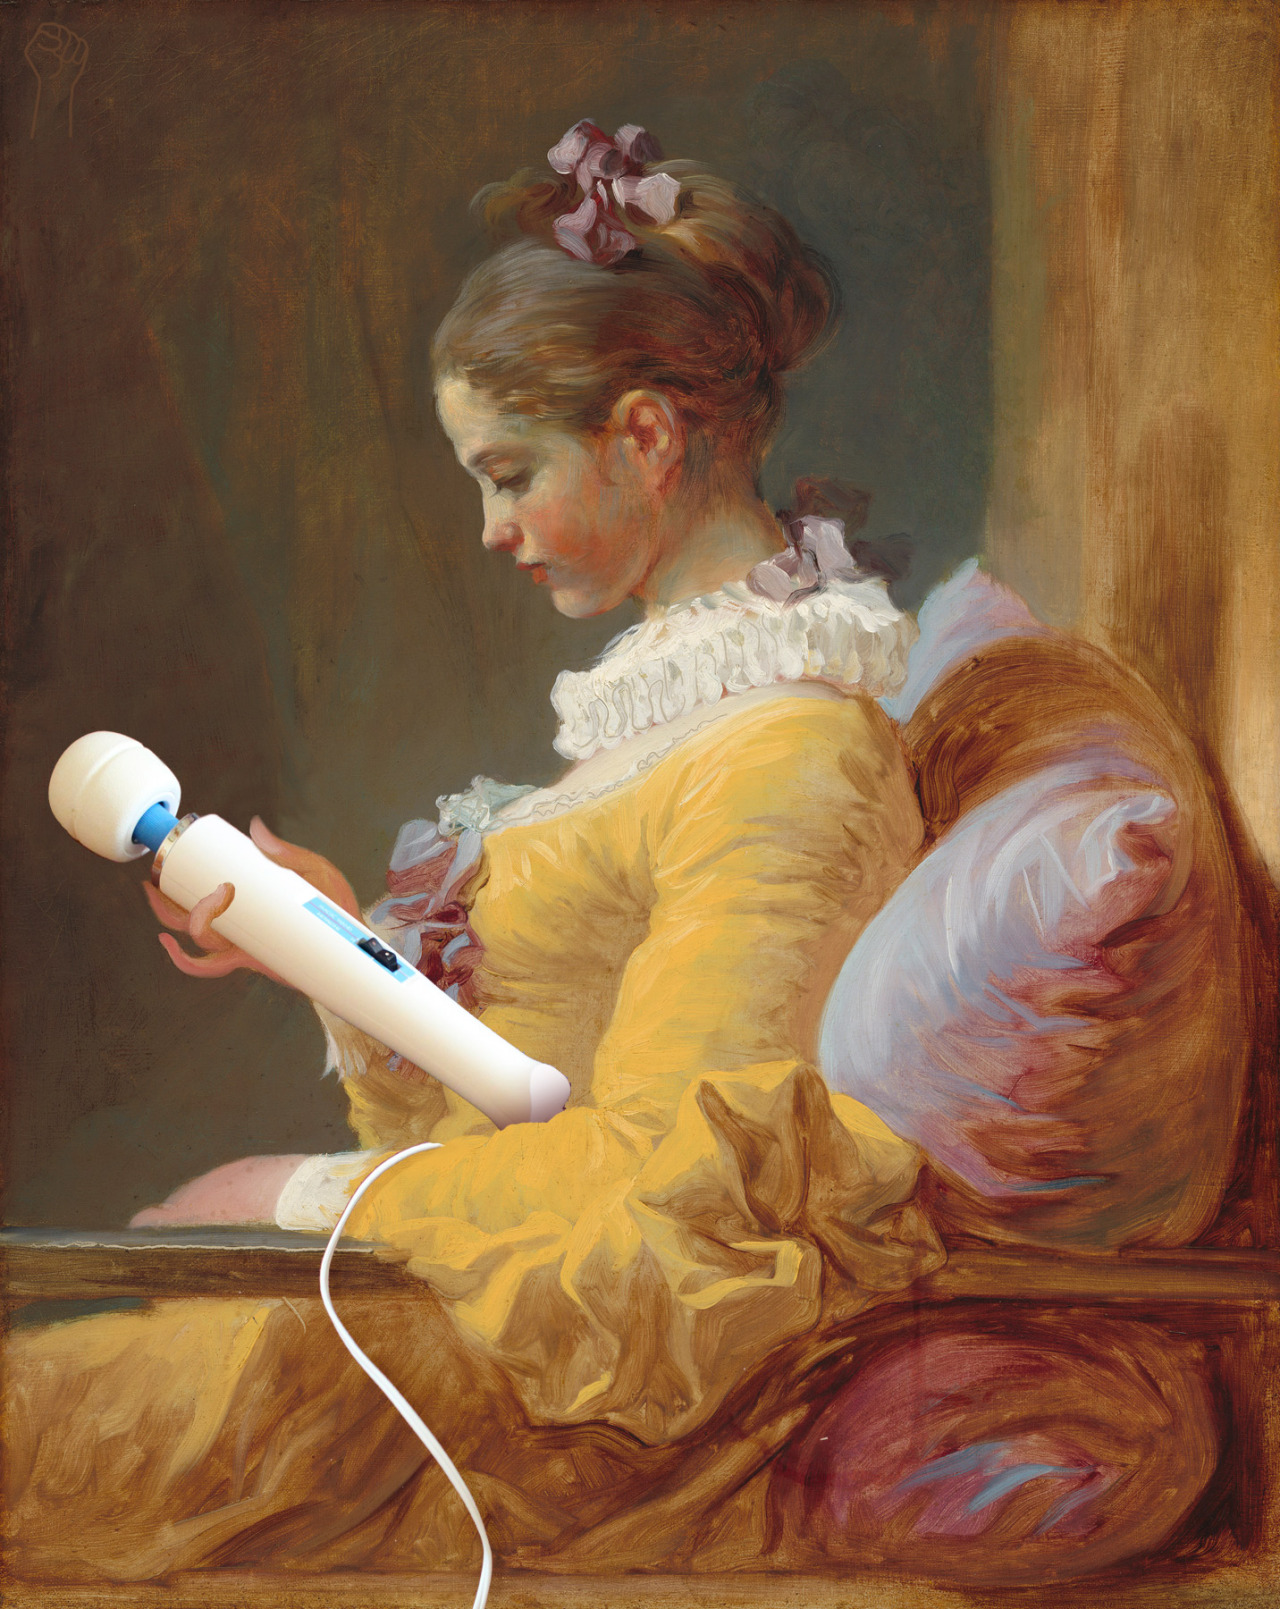 Young Girl Contemplating Magic Wand by Jean-Honore Fragonard.